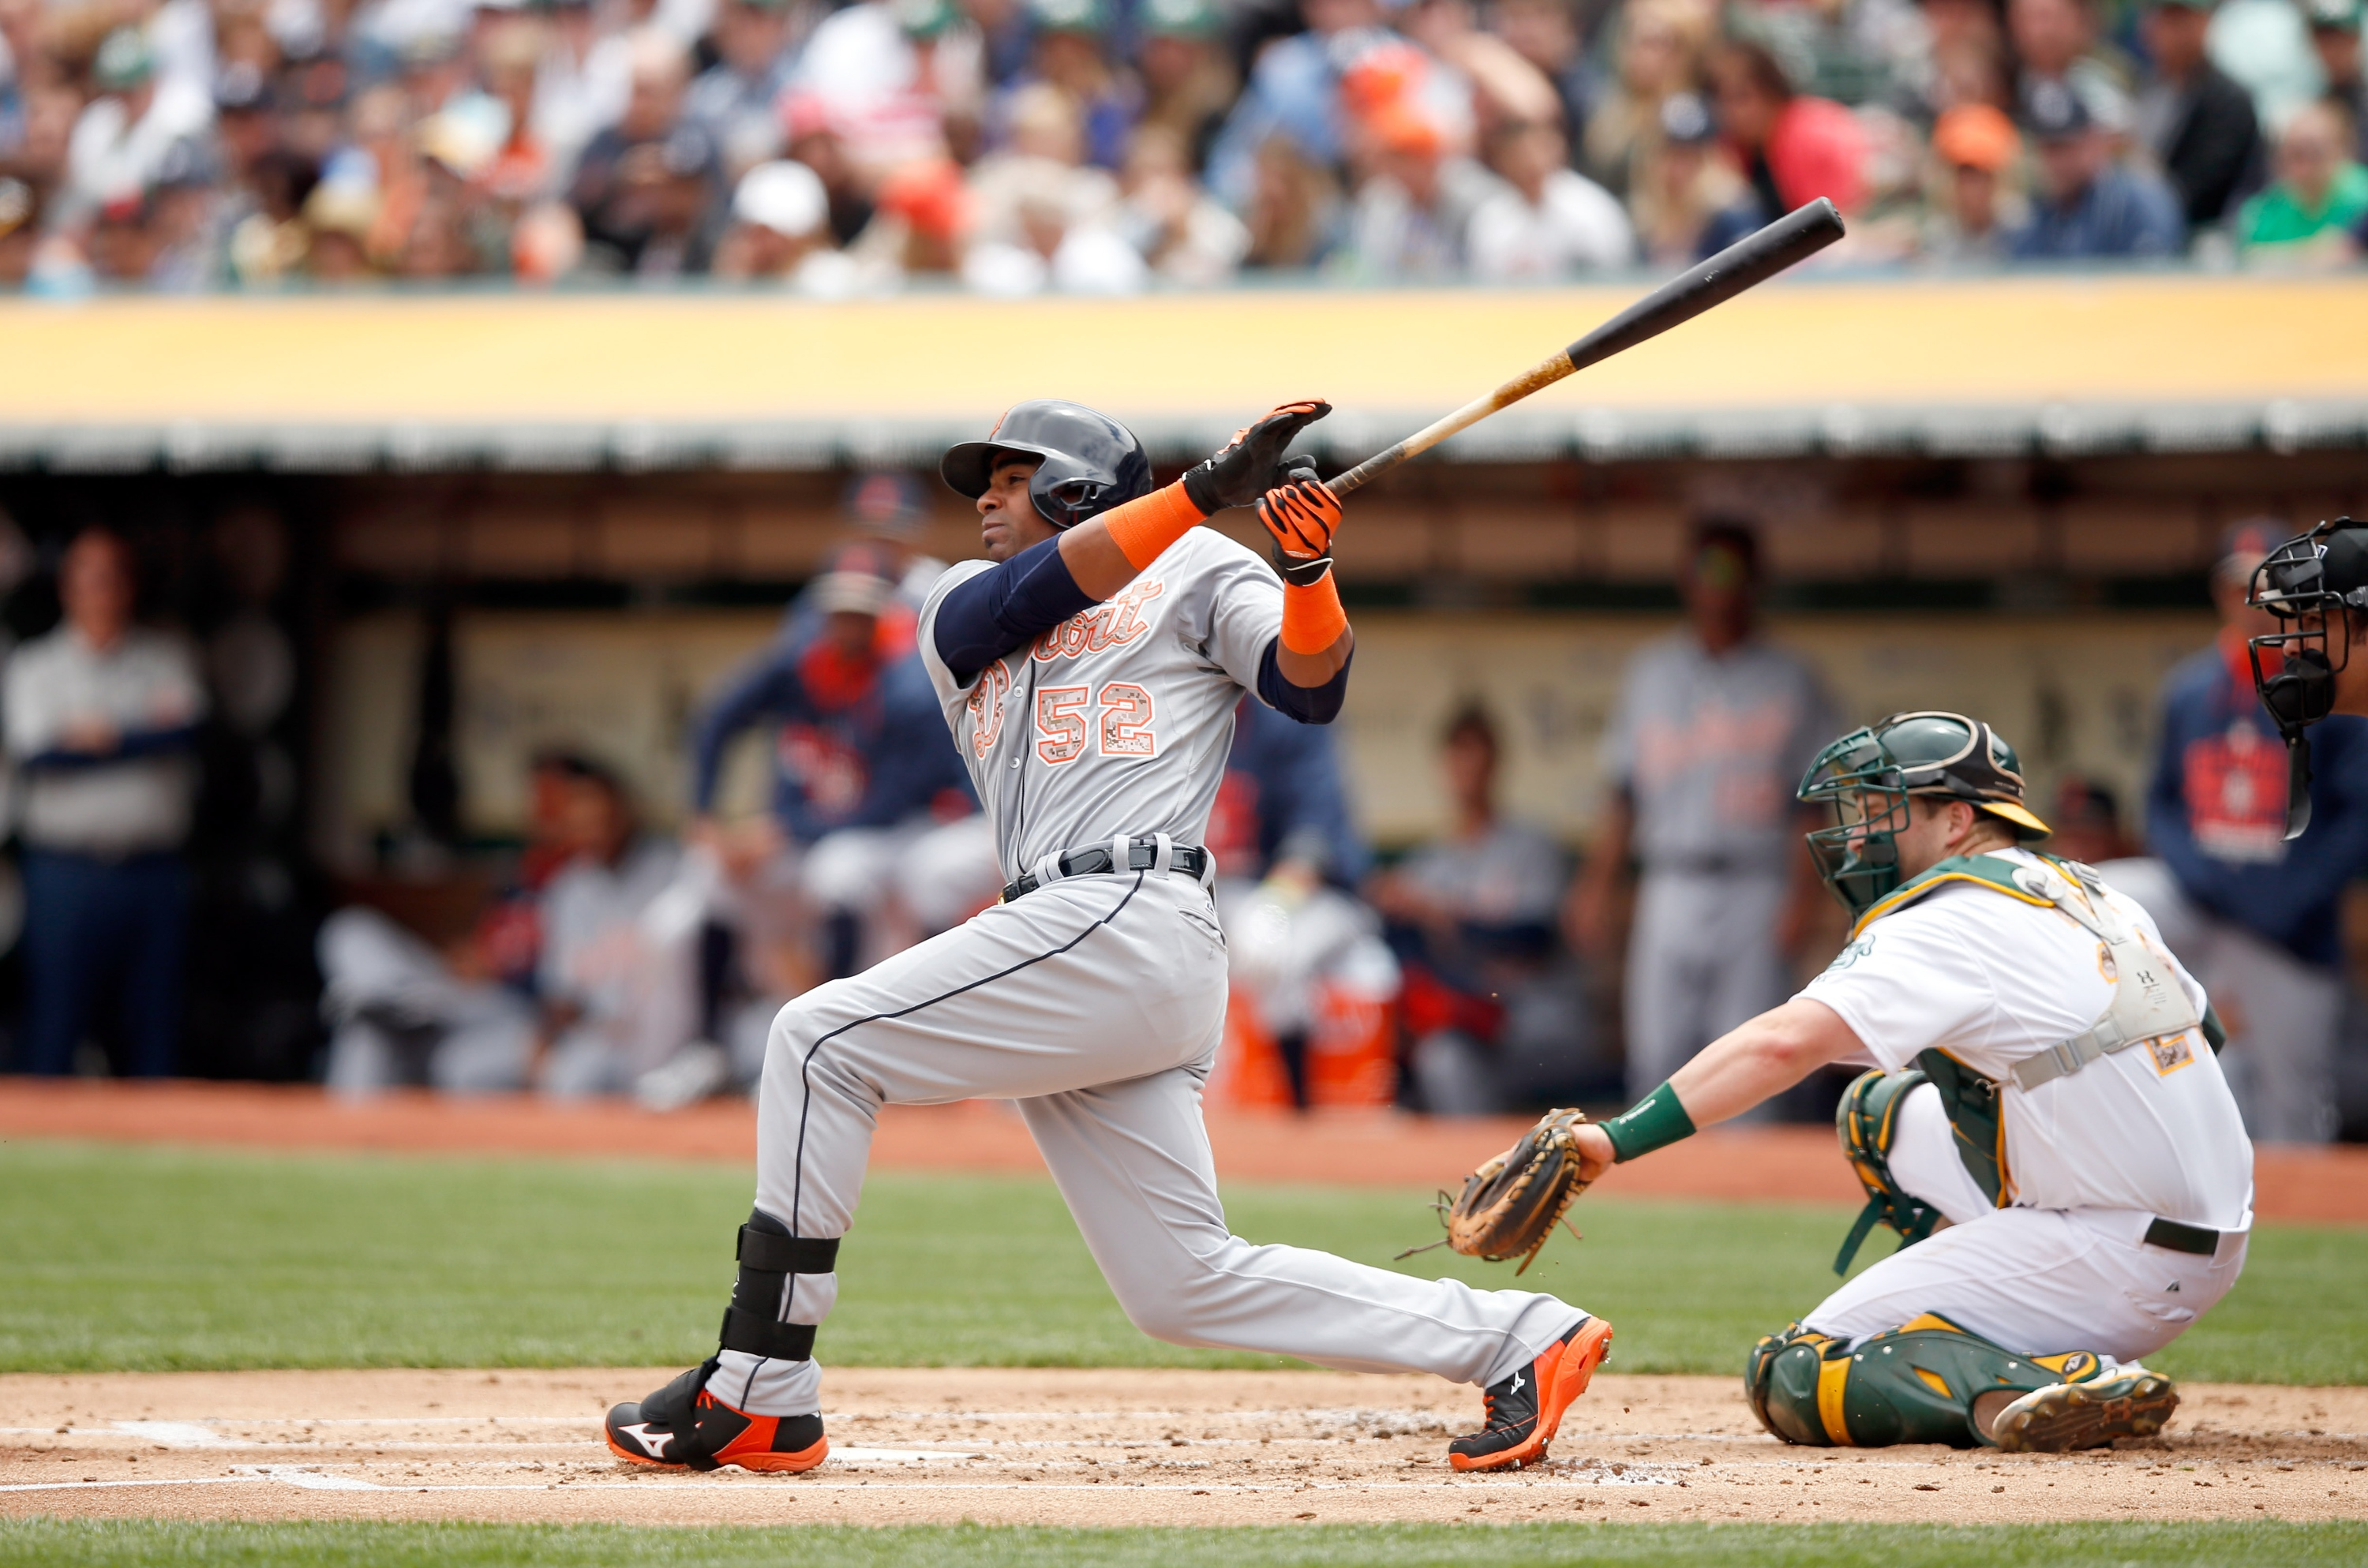 Yoenis Cespedes on A's: 'Don't they want to win a championship?…